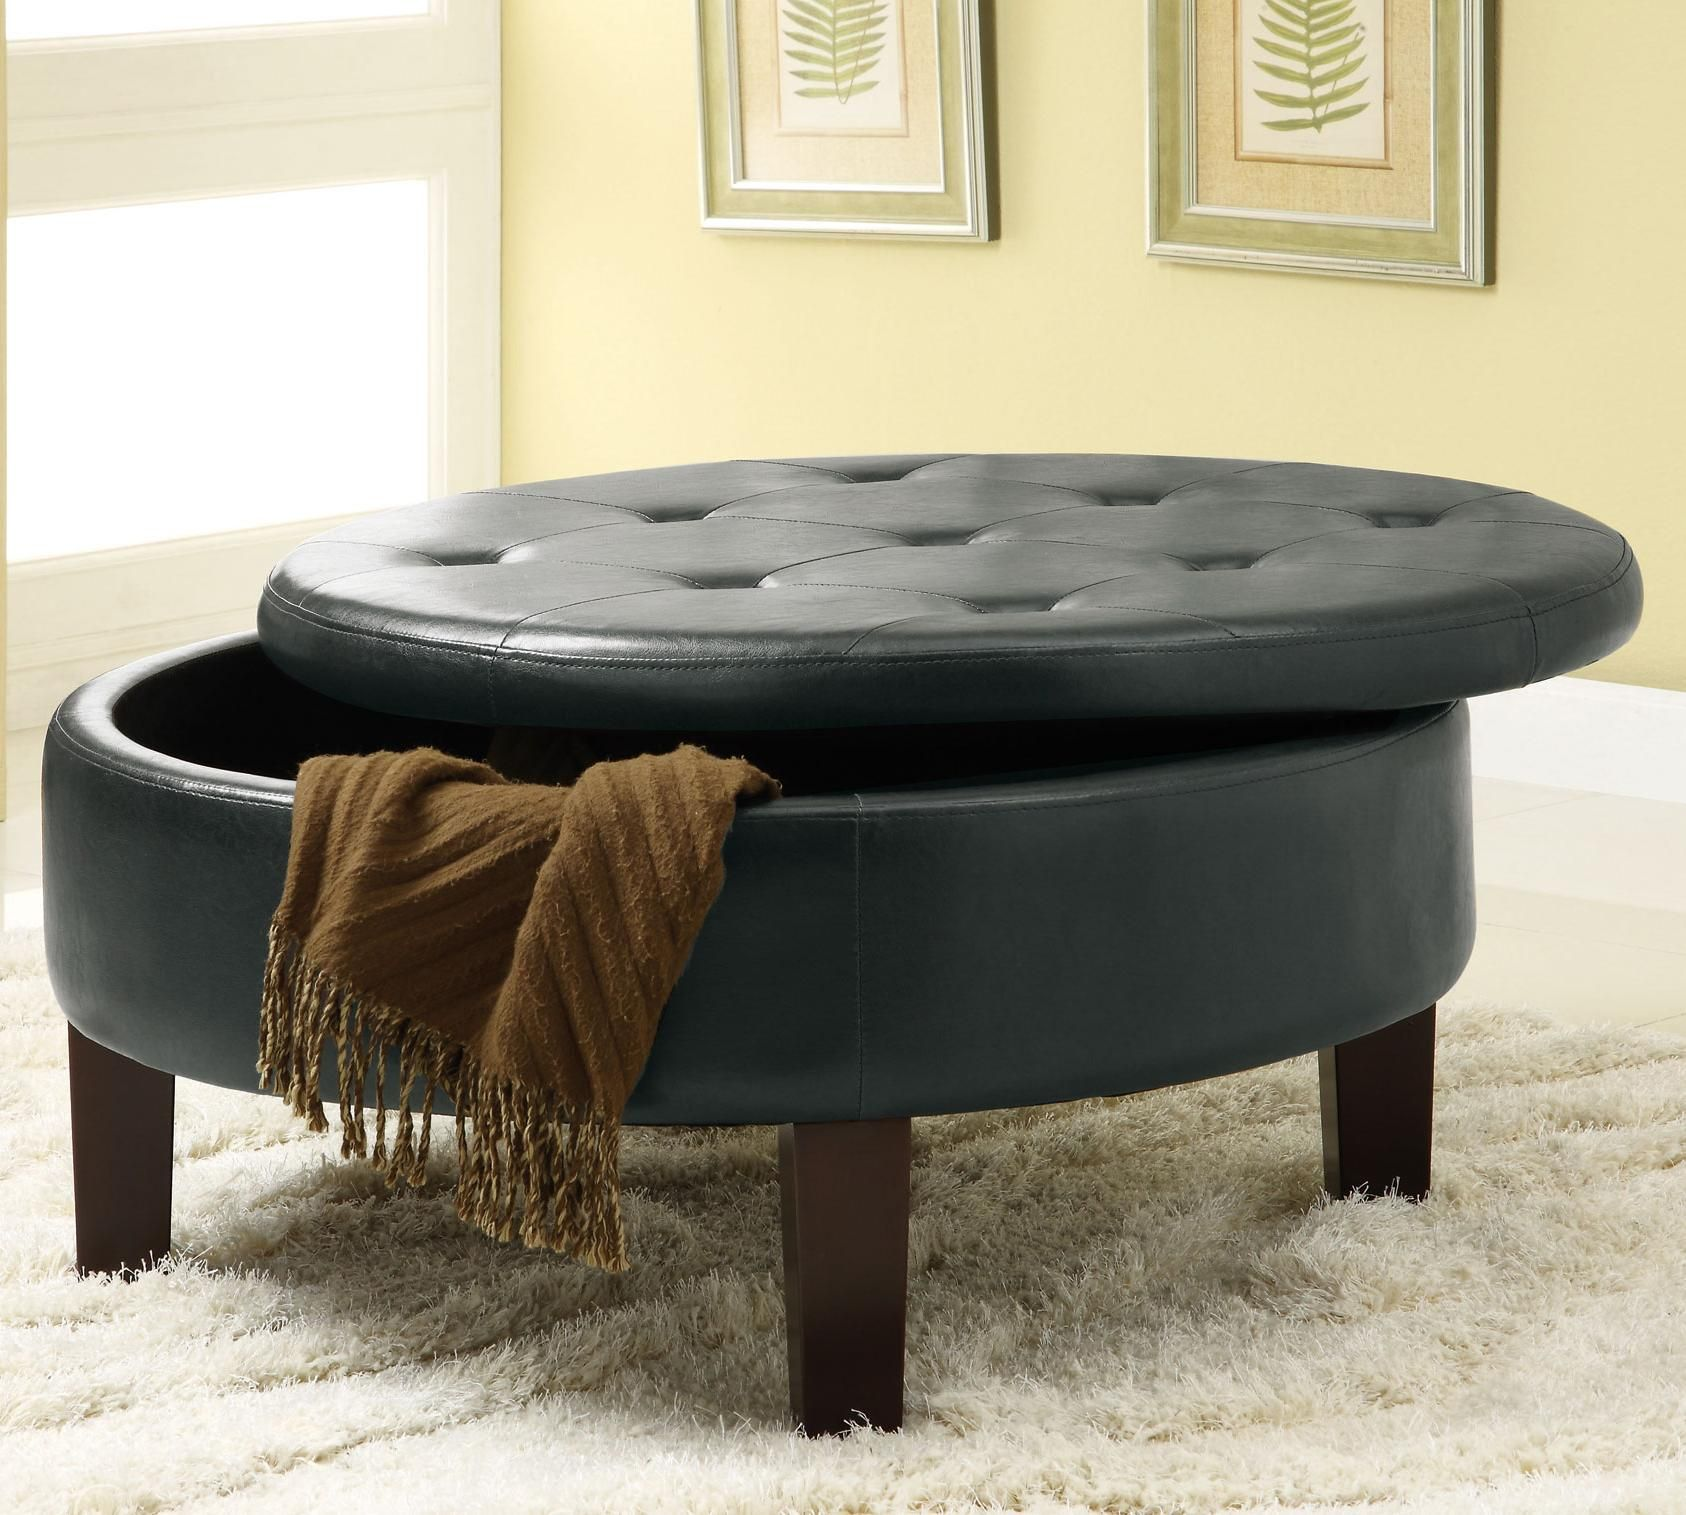 4184263d401ce16fc92e7d3b366e5586 Top Result 50 Awesome Diy Ottoman Coffee Table Pic 2017 Phe2